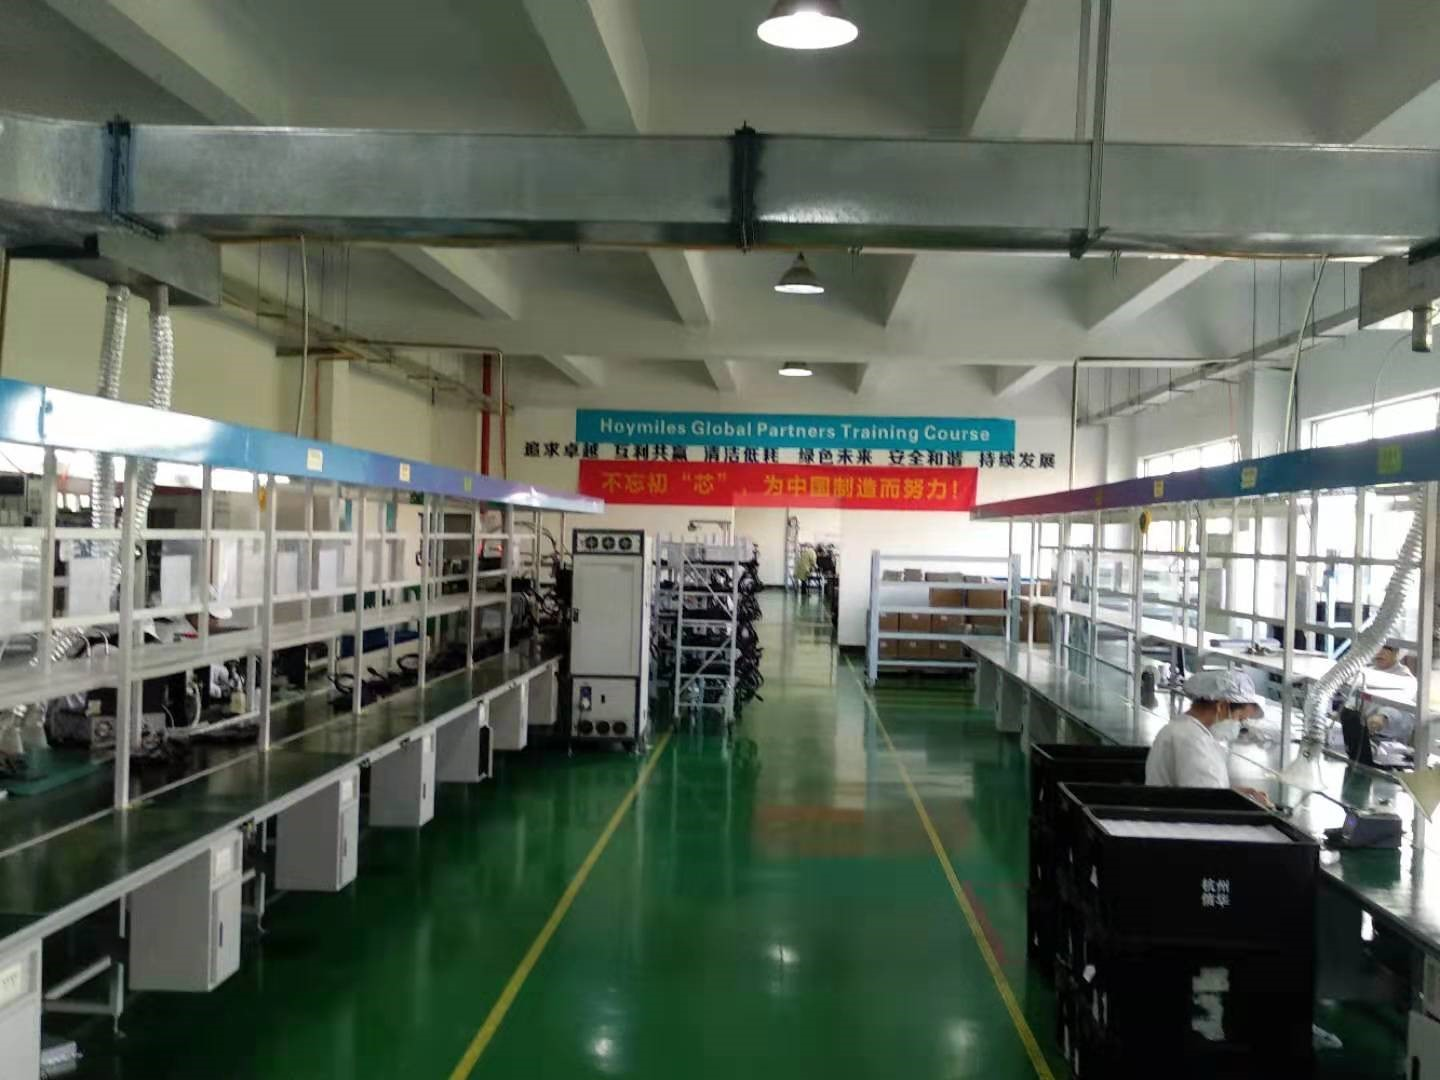 Among the products hitting factory shelves when PV Tech visited were MI-1200 units, marketed as the world's first single-phase microinverter able to service four panels at once (Image credit: Solar Media)